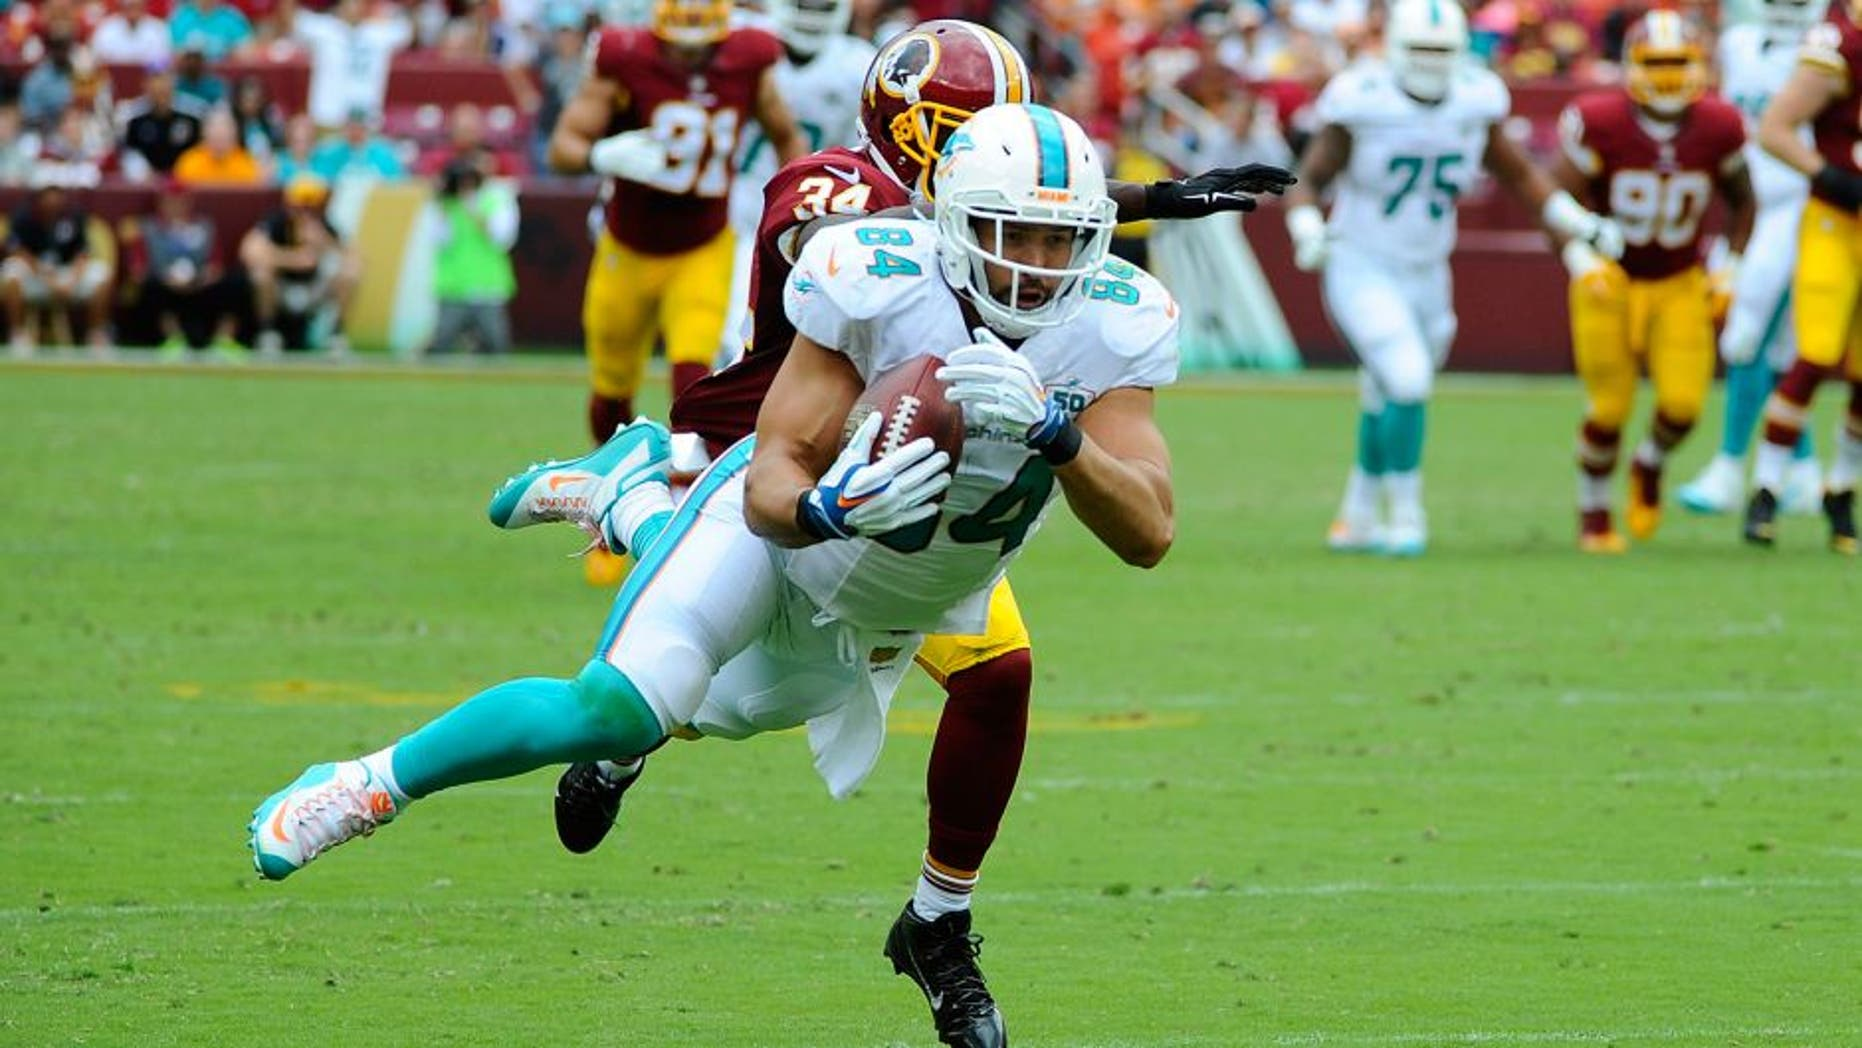 Sep 13, 2015; Landover, MD, USA; Miami Dolphins tight end Jordan Cameron (84) makes a diving catch past Washington Redskins free safety Trenton Robinson (34) during the second half at FedEx Field. Mandatory Credit: Brad Mills-USA TODAY Sports